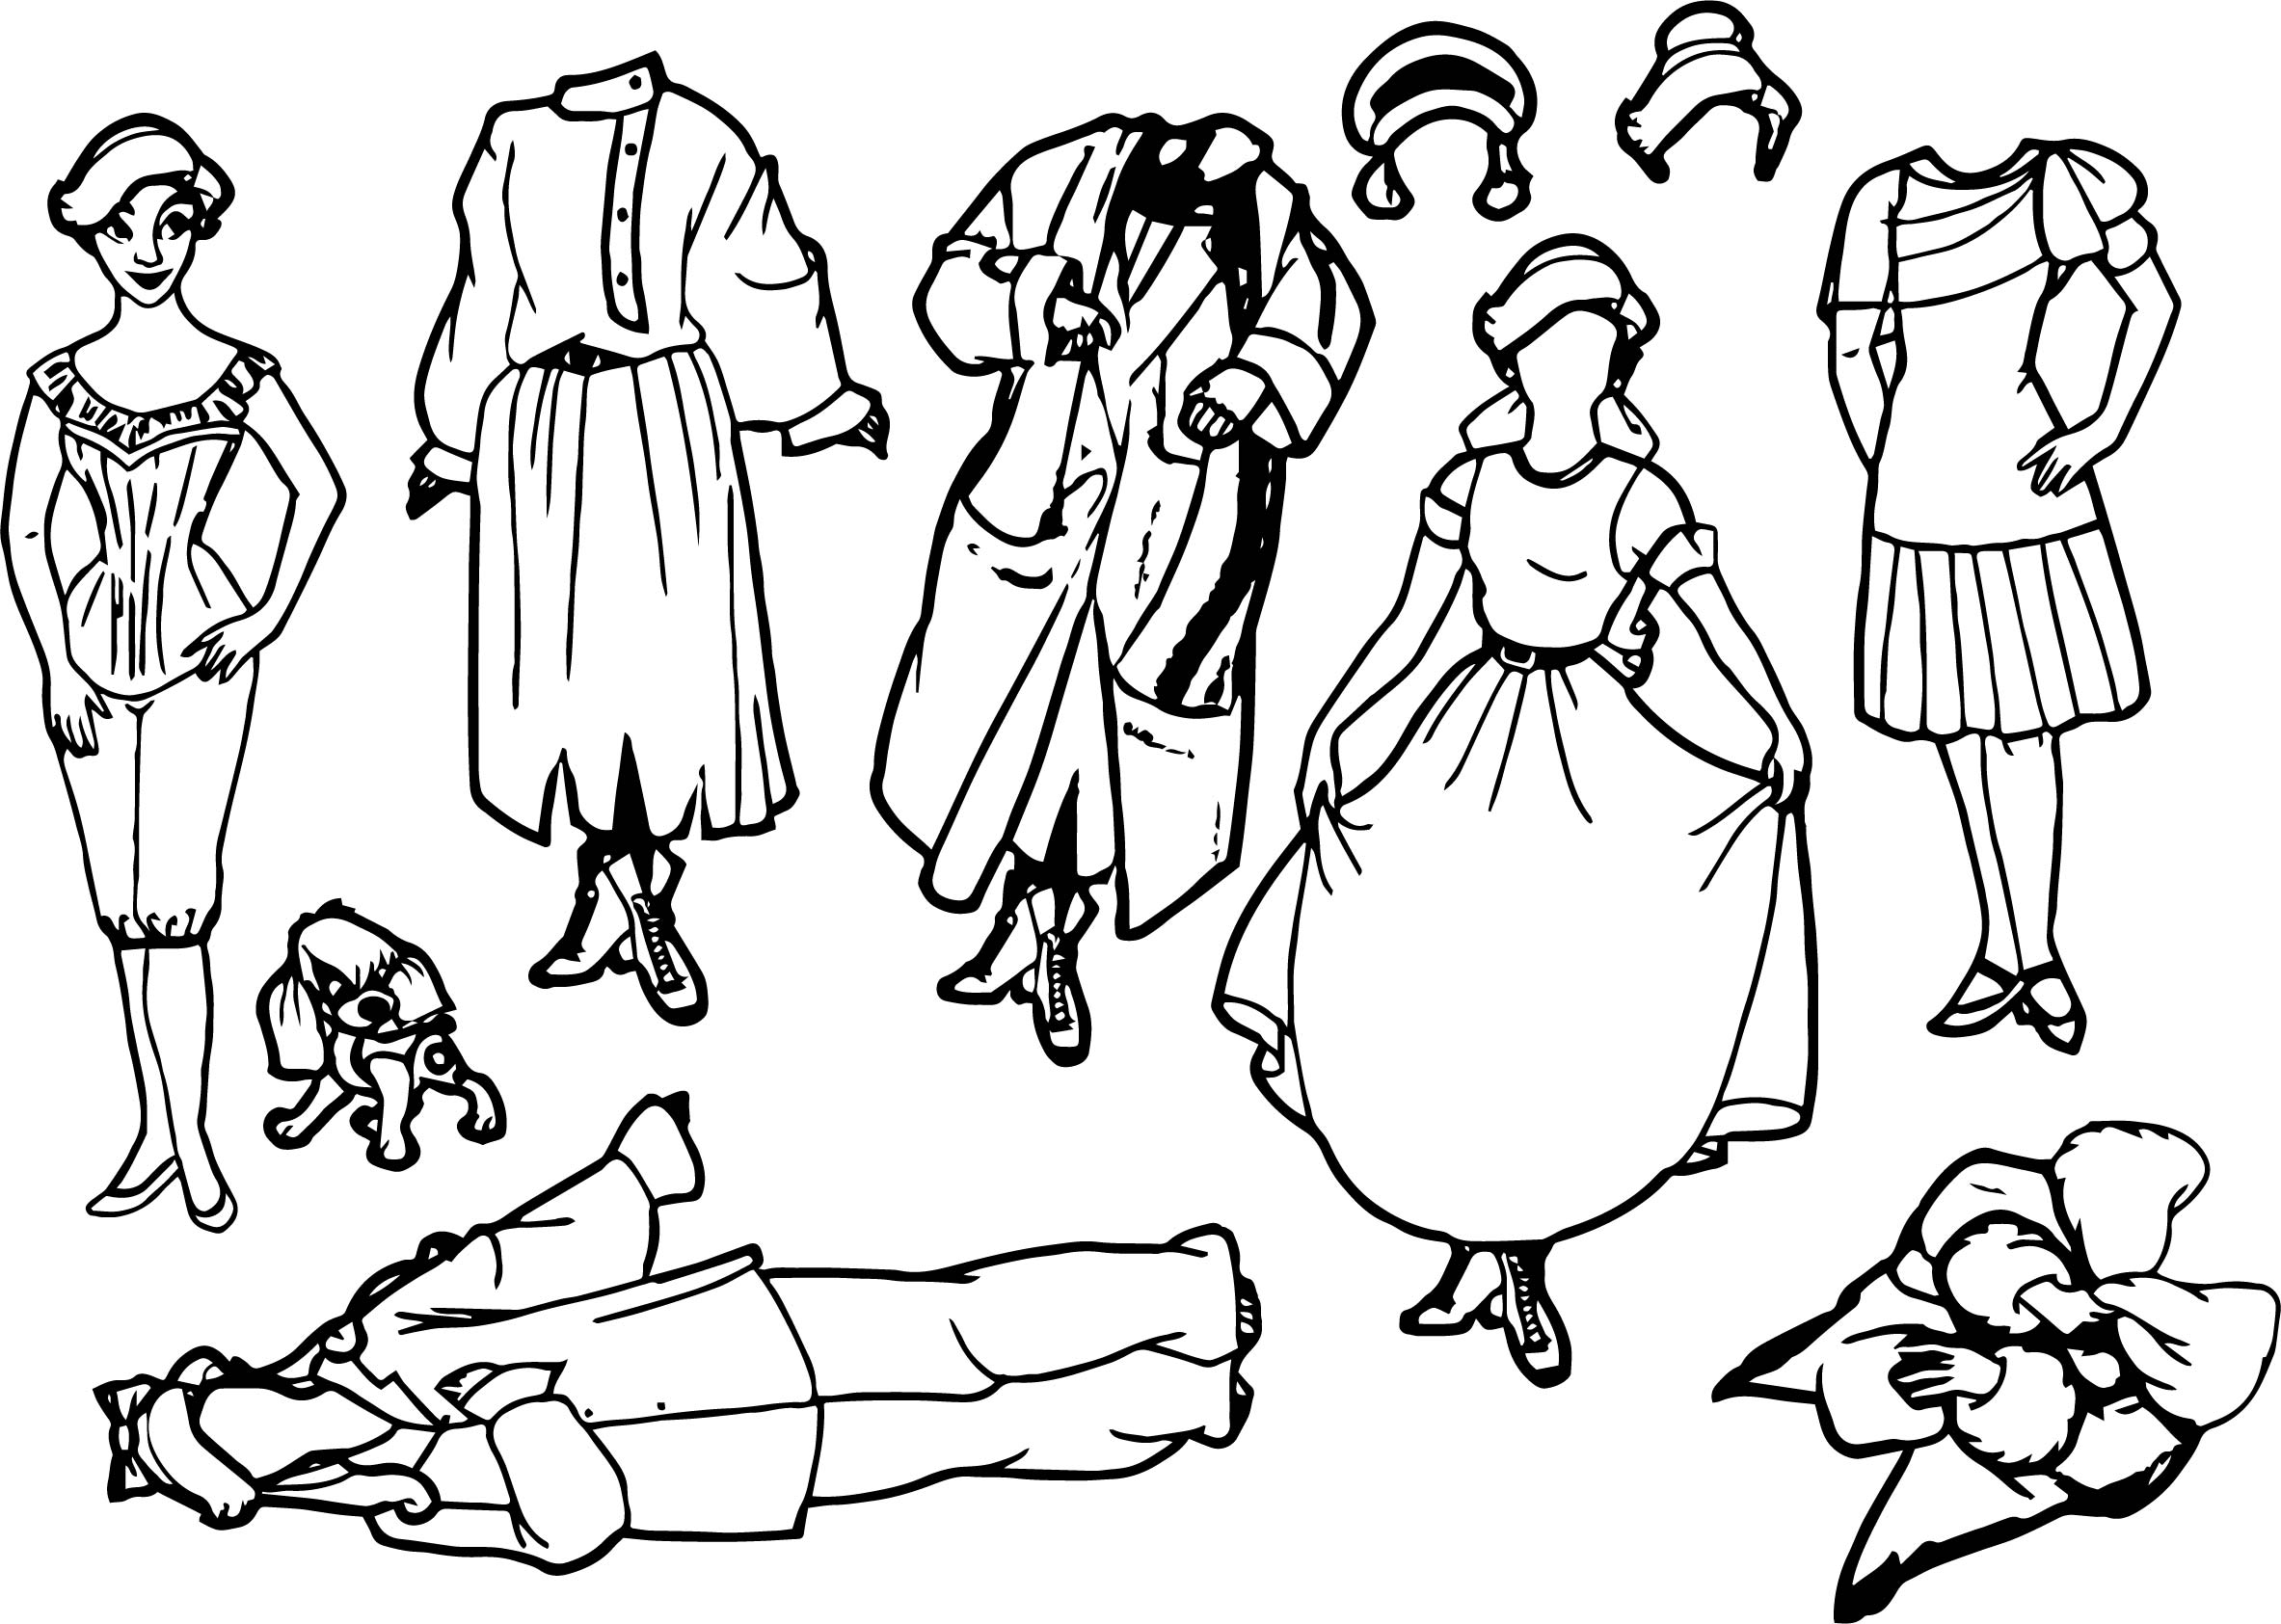 anastasia paper dolls coloring page - Paper Doll Coloring Pages